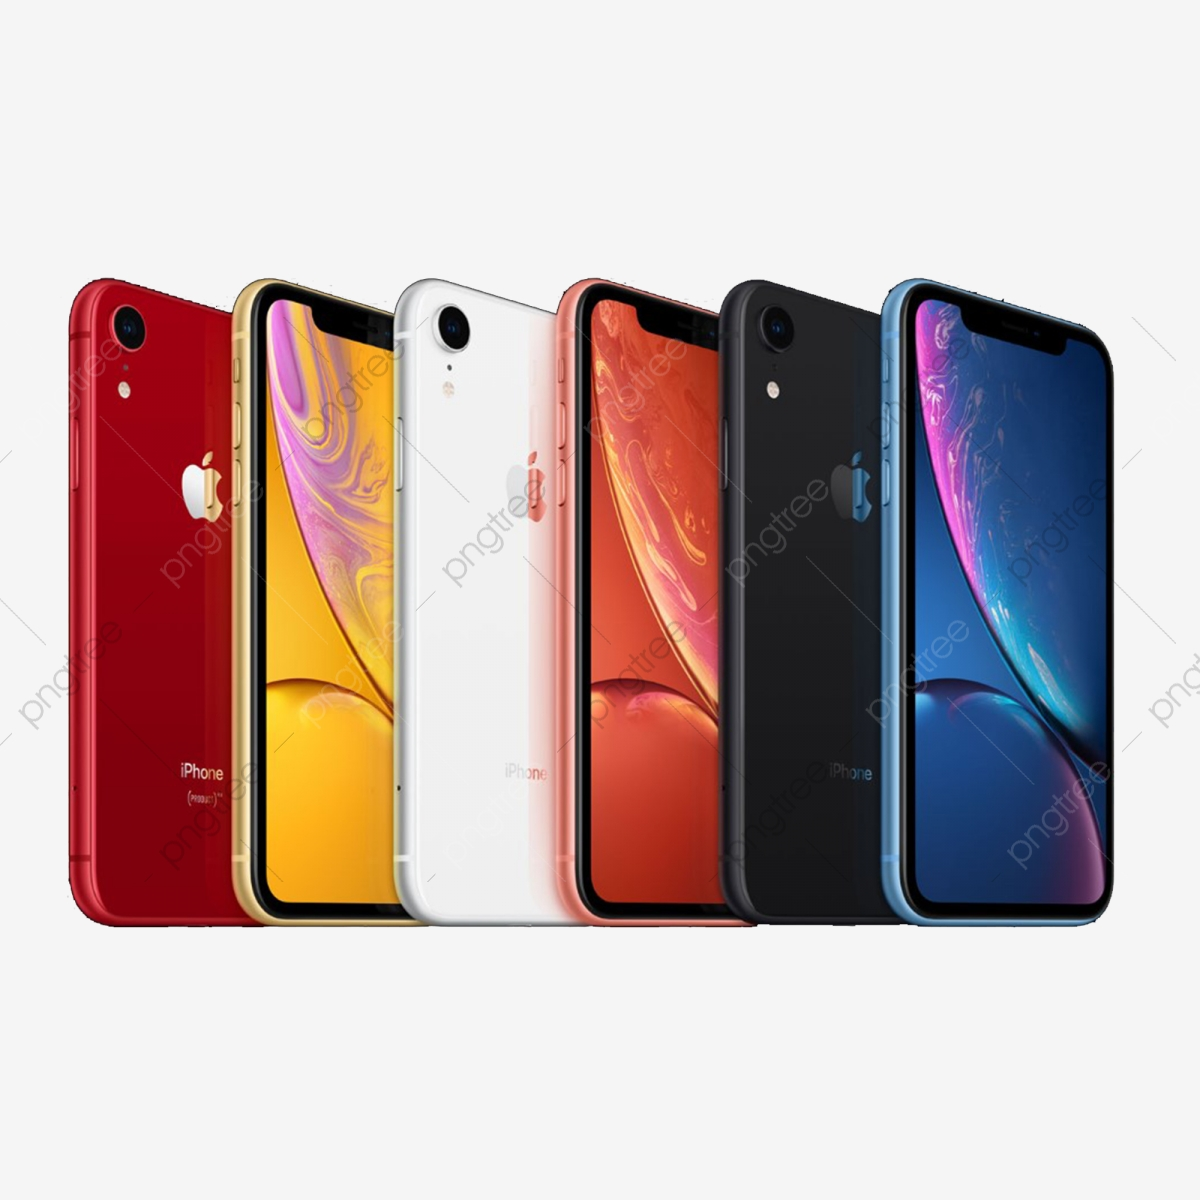 New Iphone Xr All Color Phototype Mockup, Mobile, Phone.